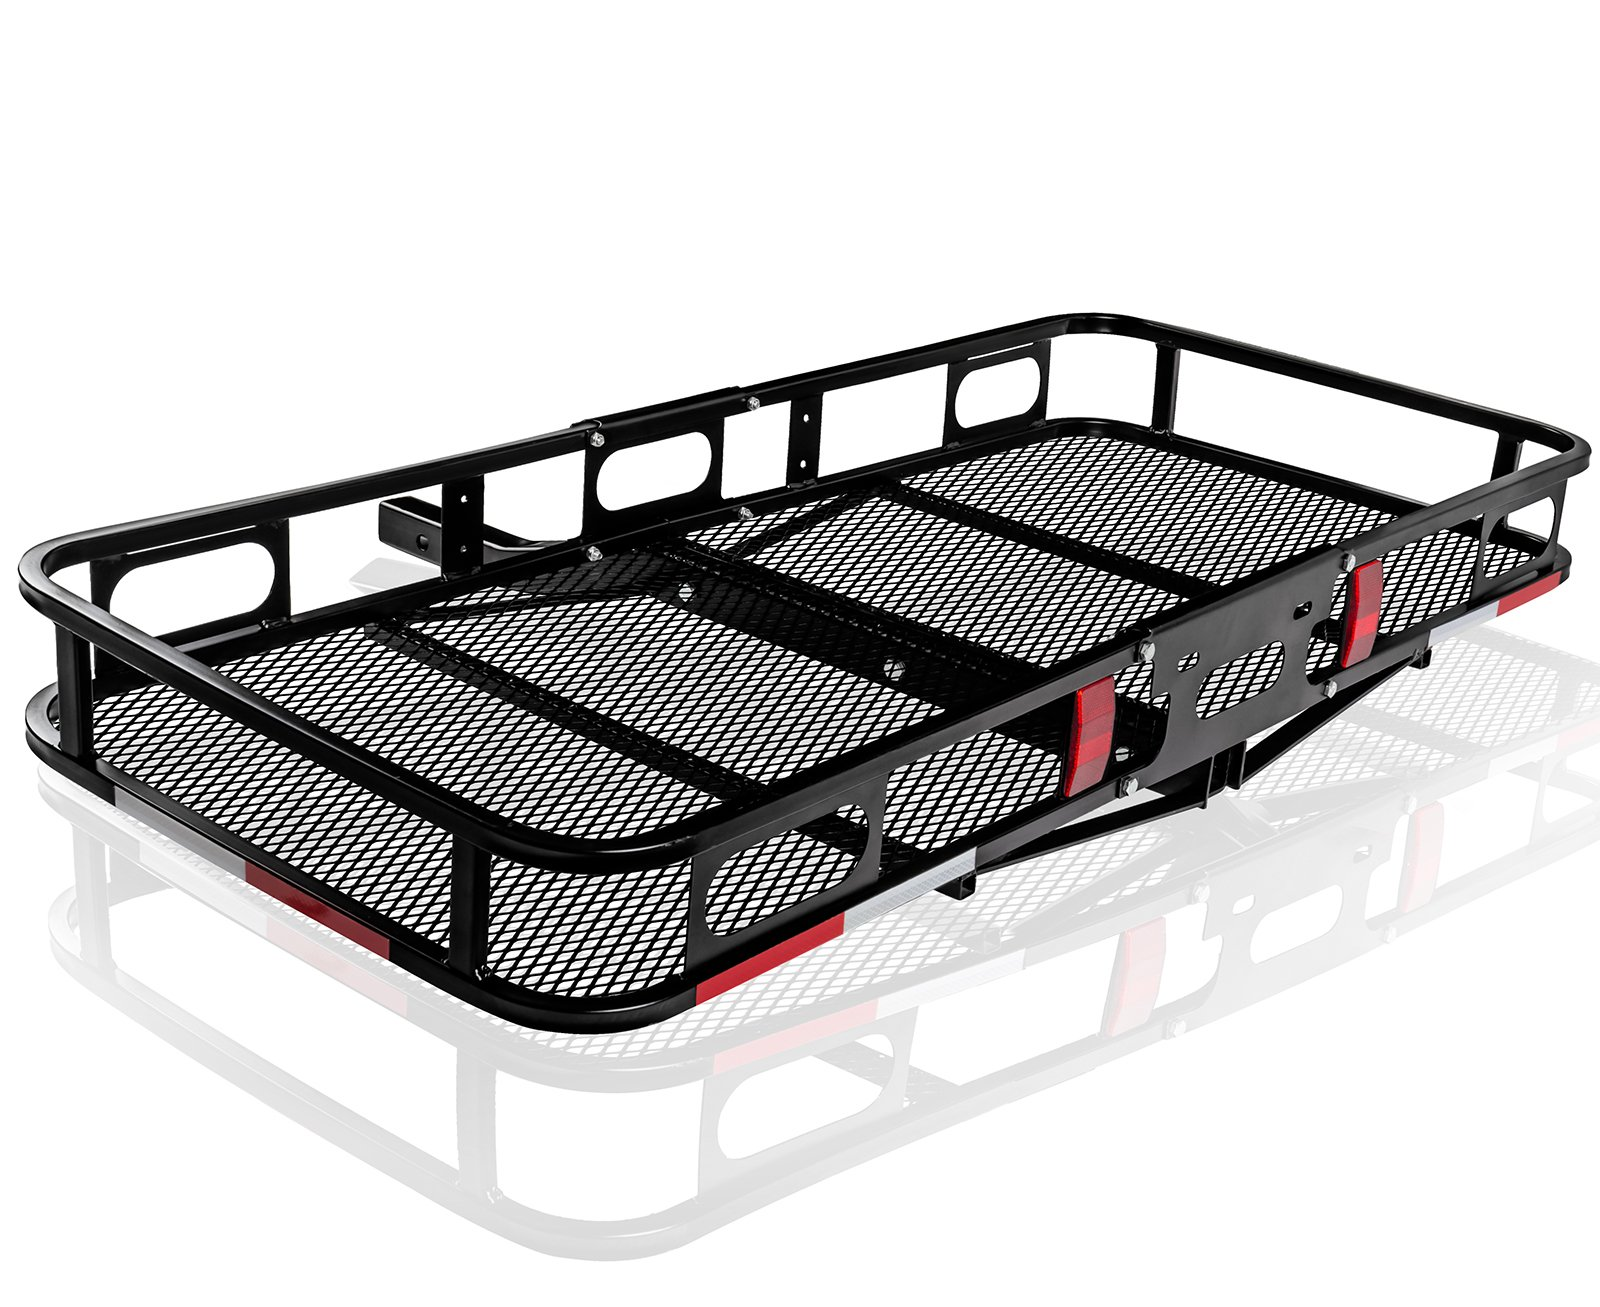 OxGord Universal Auto Steel Rear Hitch Mount Carrier Basket for Cars/Trucks/SUV - Max Capacity of 500Lbs by OxGord